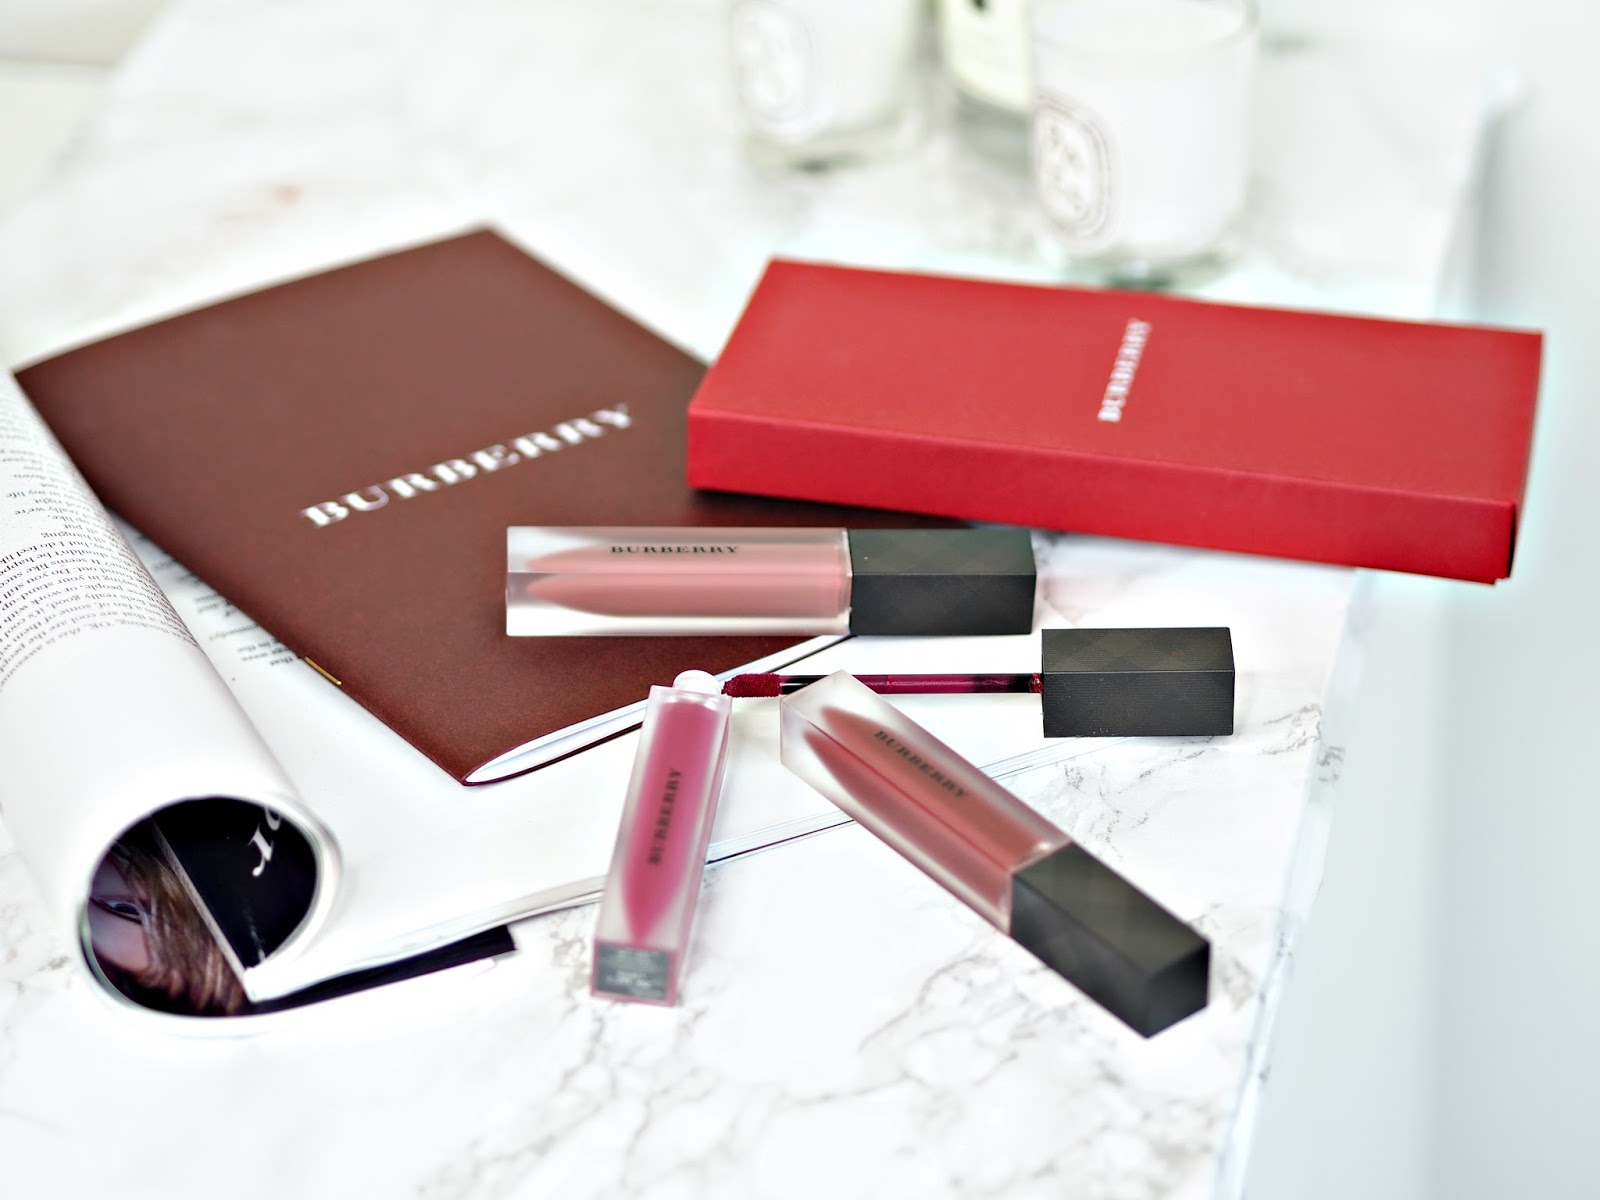 Burberry Liquid Lip Velvet Lipsticks